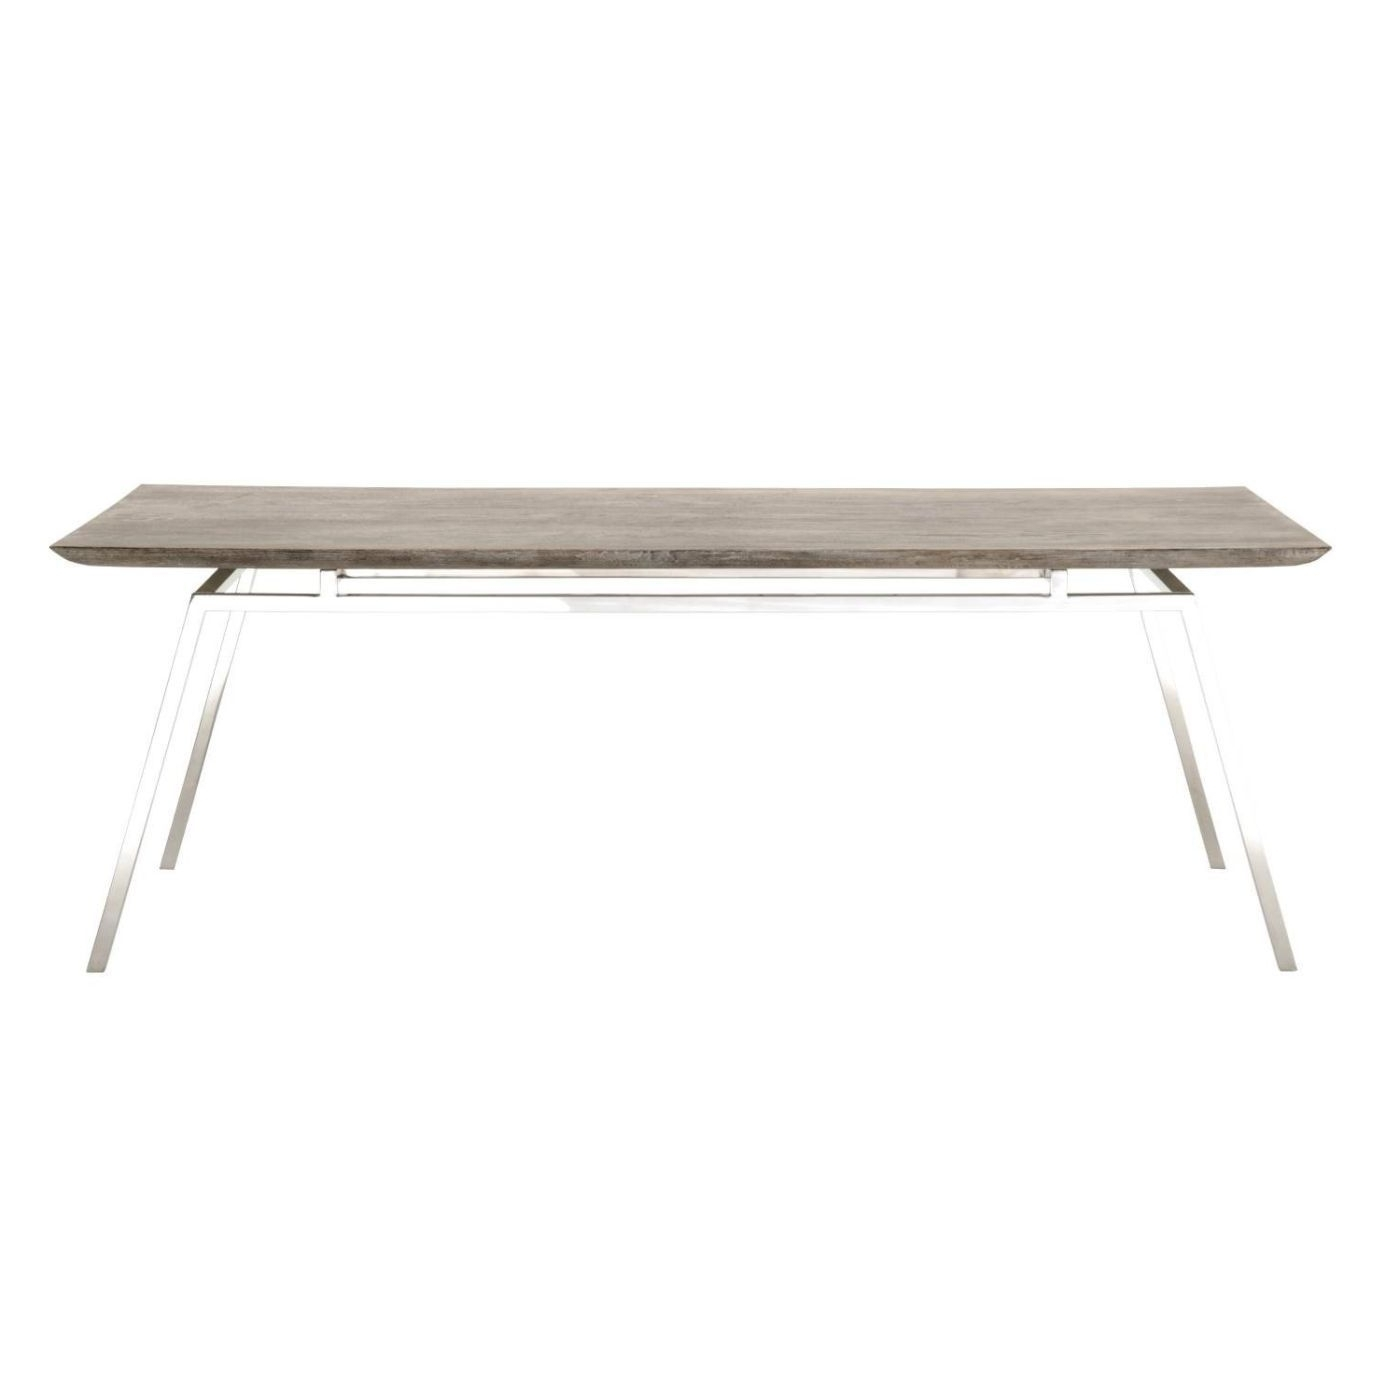 Most Popular Benson Rectangle Dining Tables With Regard To Benson Dining Table Sand Wash Oak, Stainless Steel (View 16 of 25)